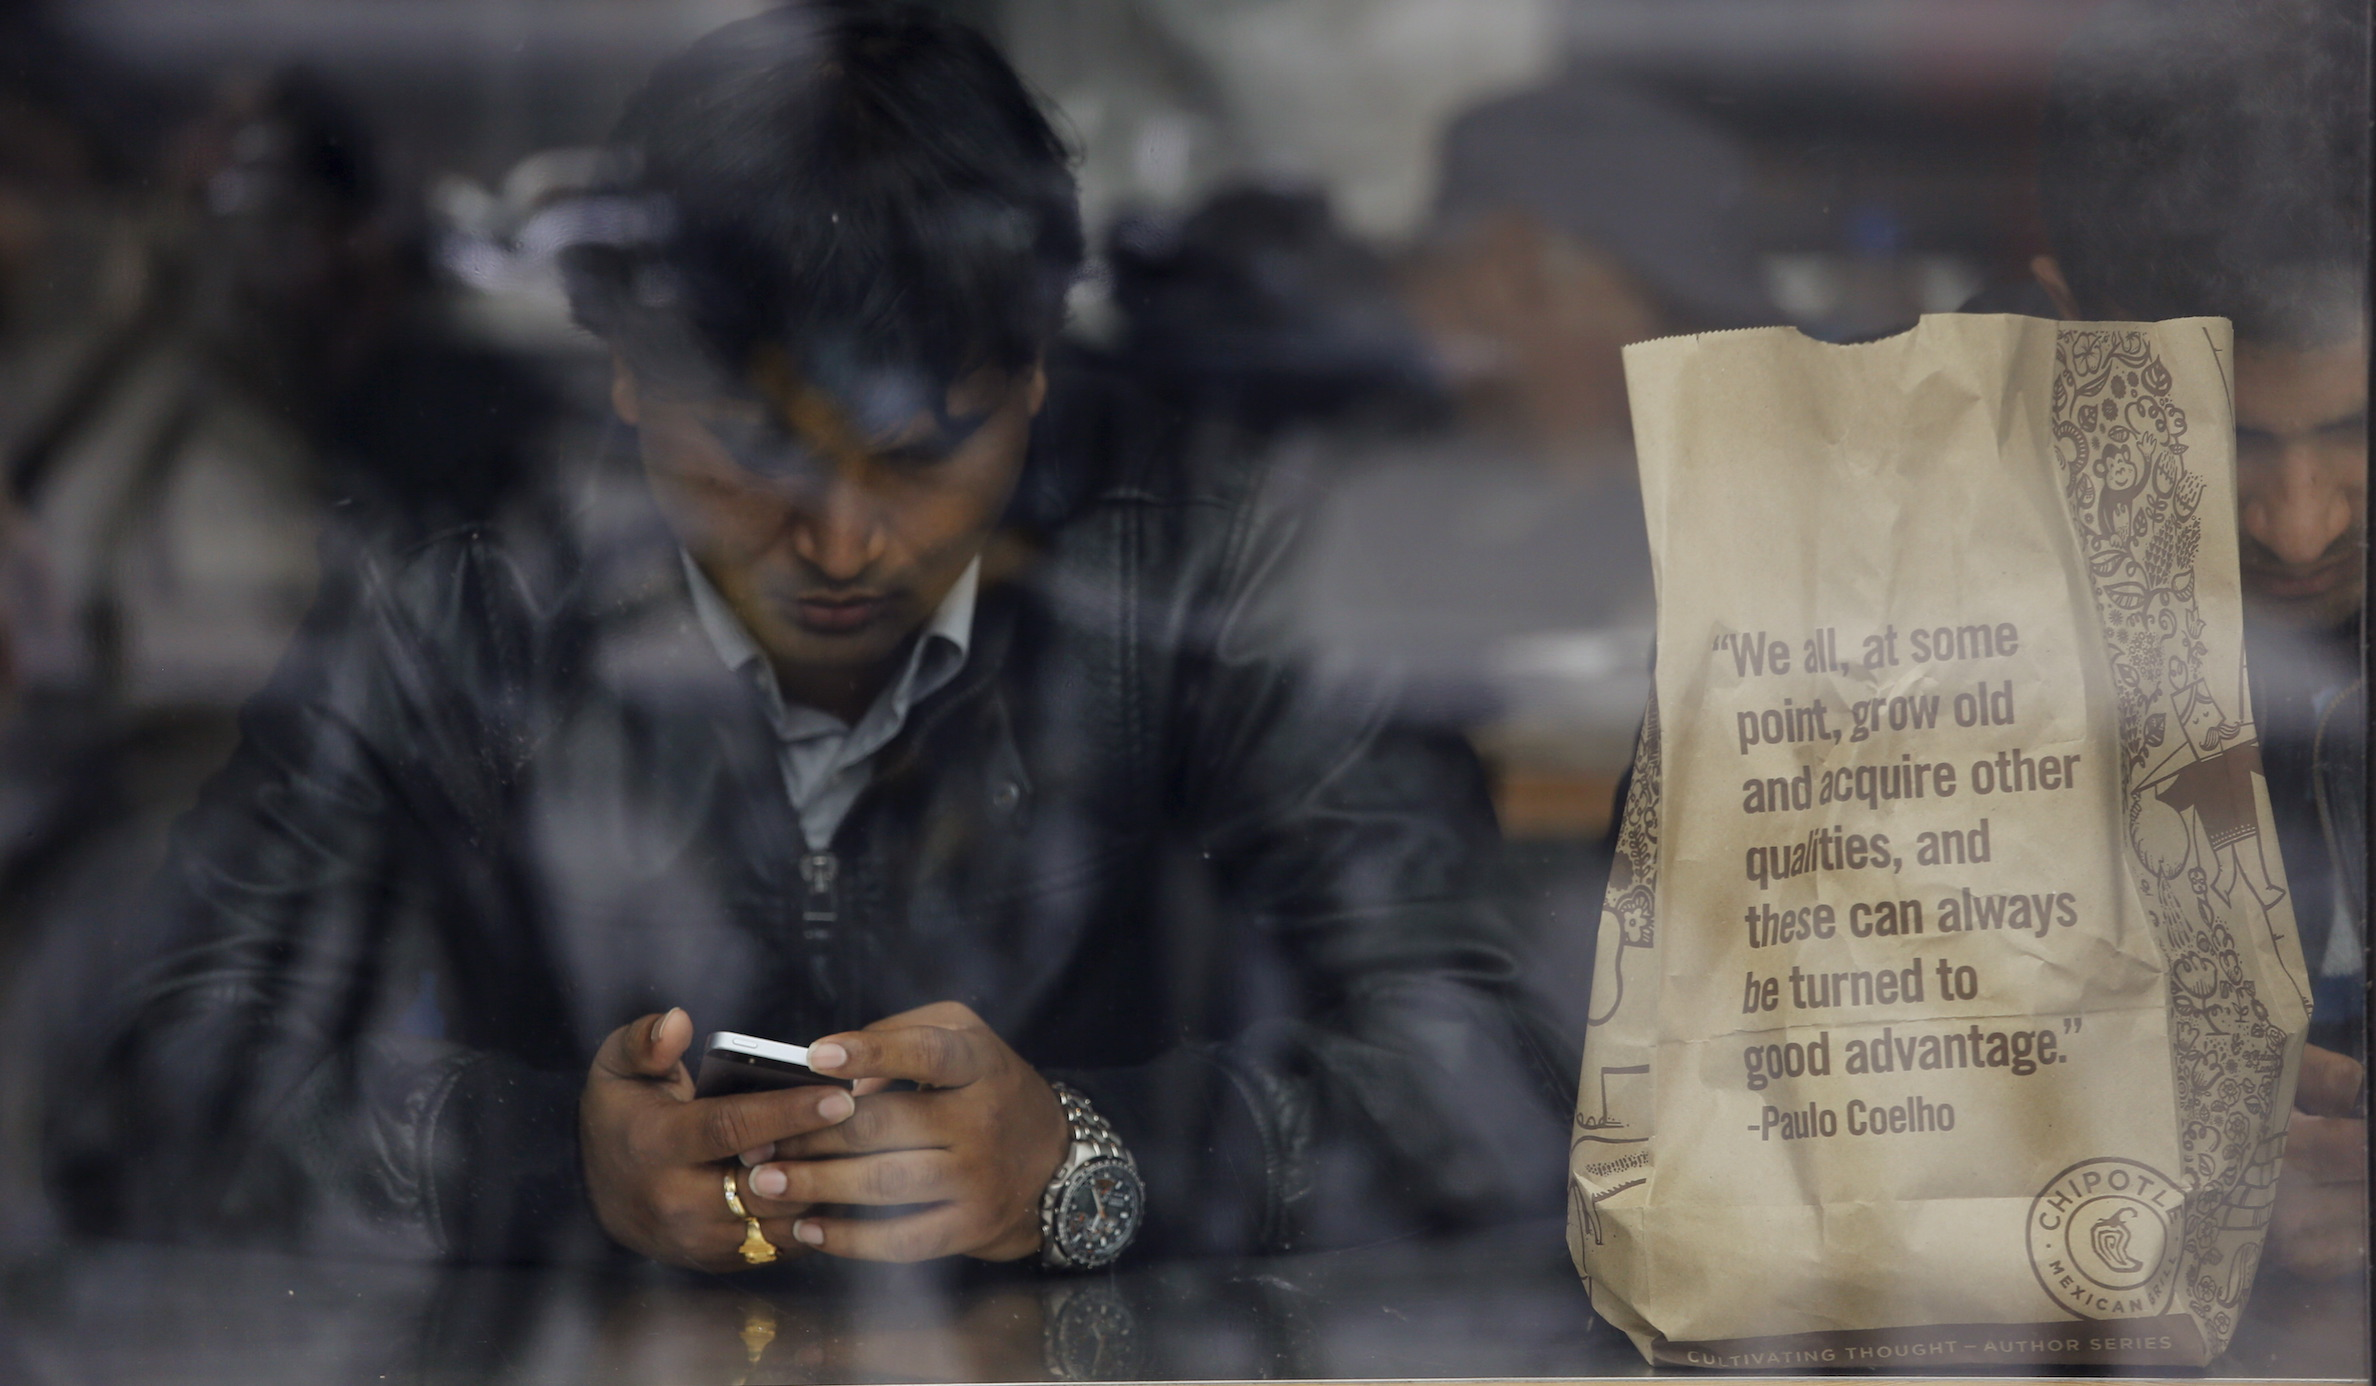 A man uses his phone next to a bag of food from Chipotle Mexican Grill in San Francisco, California July 21, 2015. Burrito chain Chipotle Mexican Grill Inc reported lower-than-expected quarterly revenue on Tuesday.   REUTERS/Robert Galbraith - RTX1L9VC